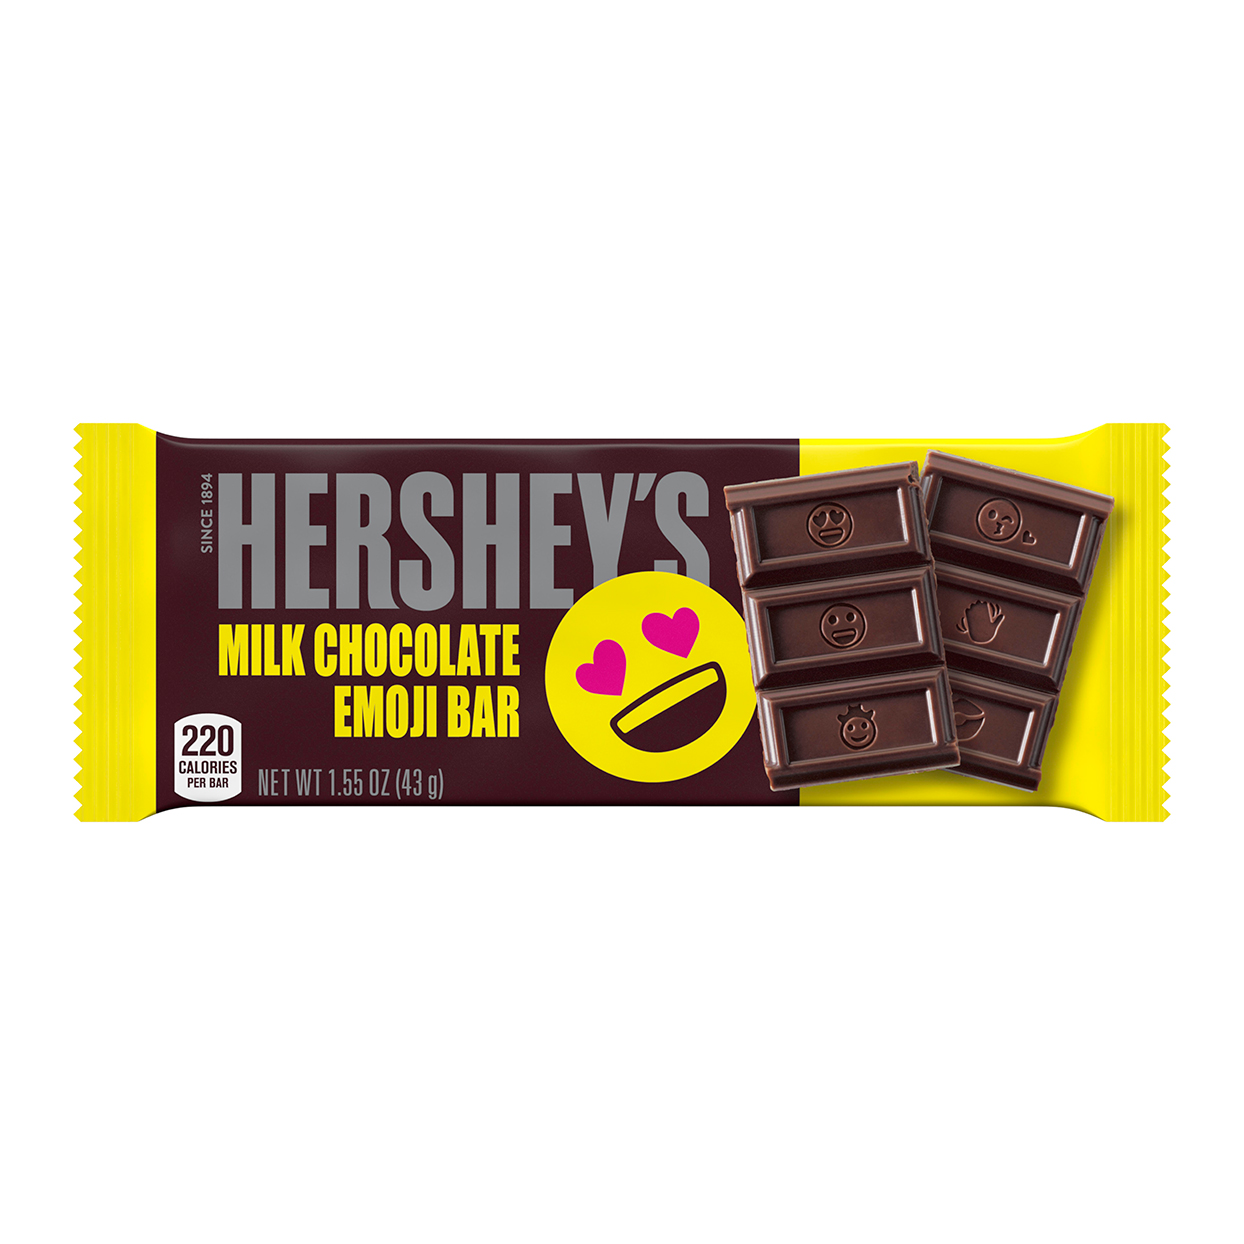 Hershey's Is Changing Their Iconic Chocolate Bars for the First Time in 125 Years